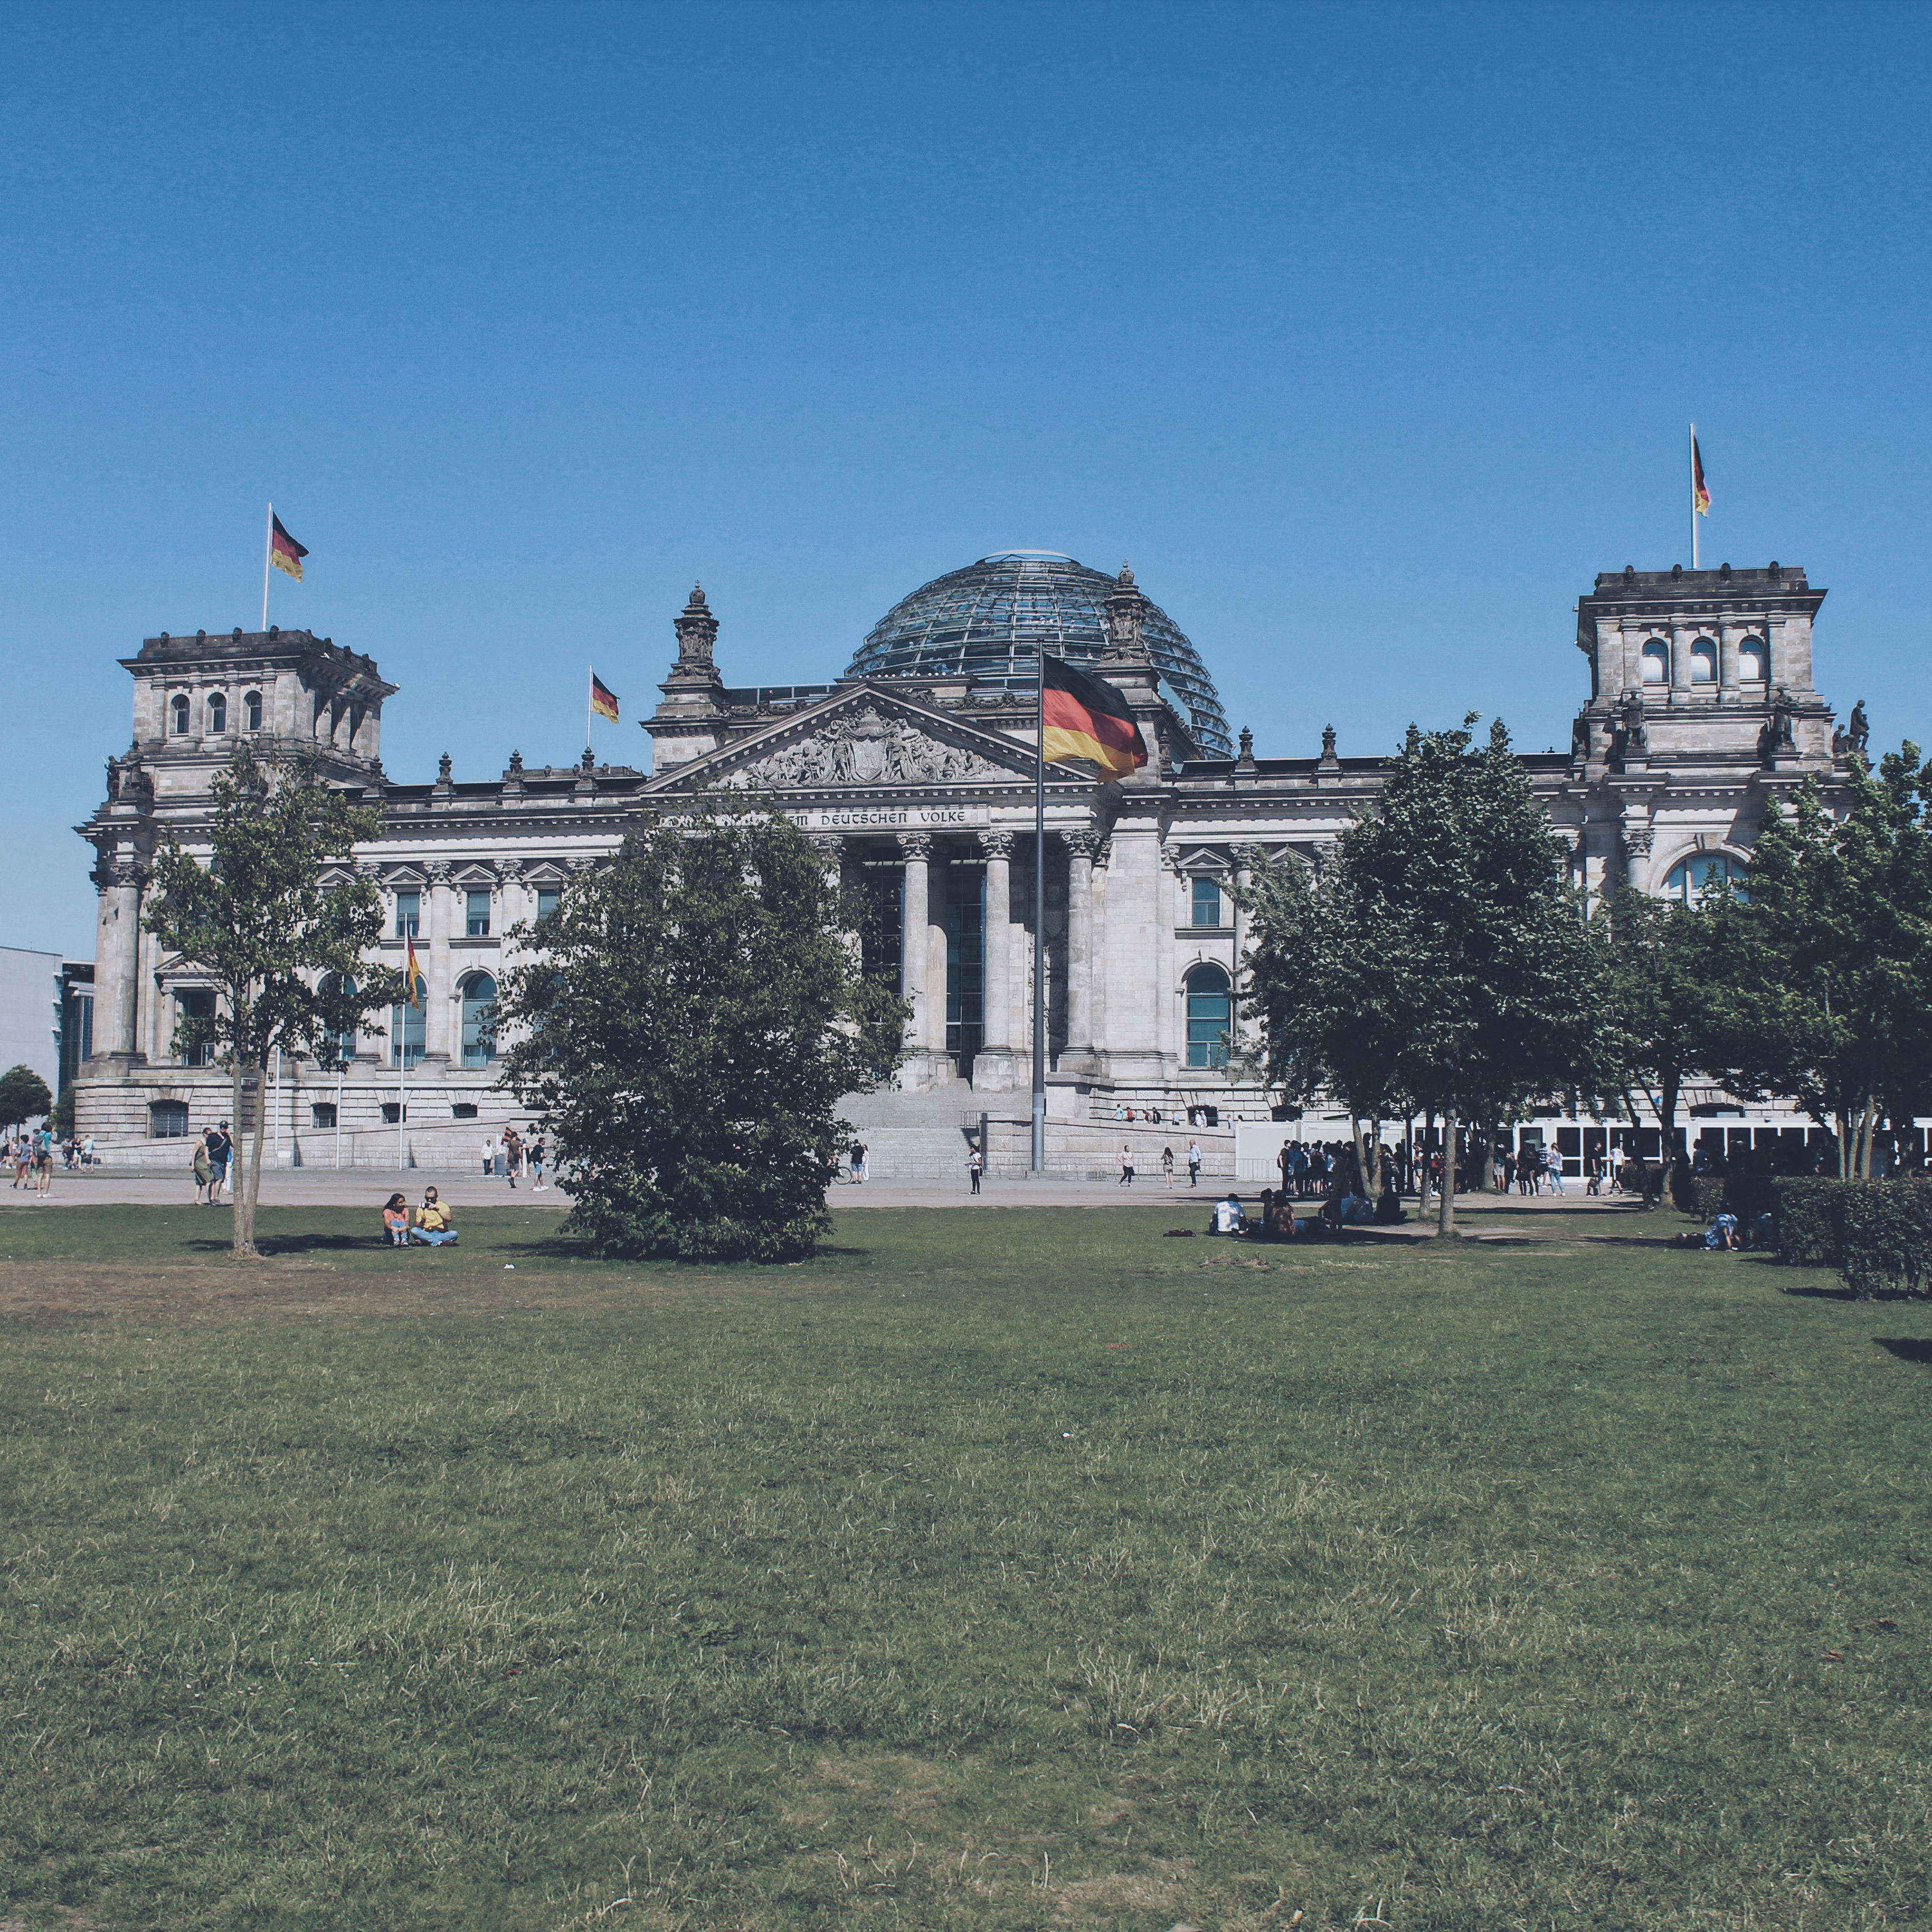 Photo of the Reichstag Building in Berlin